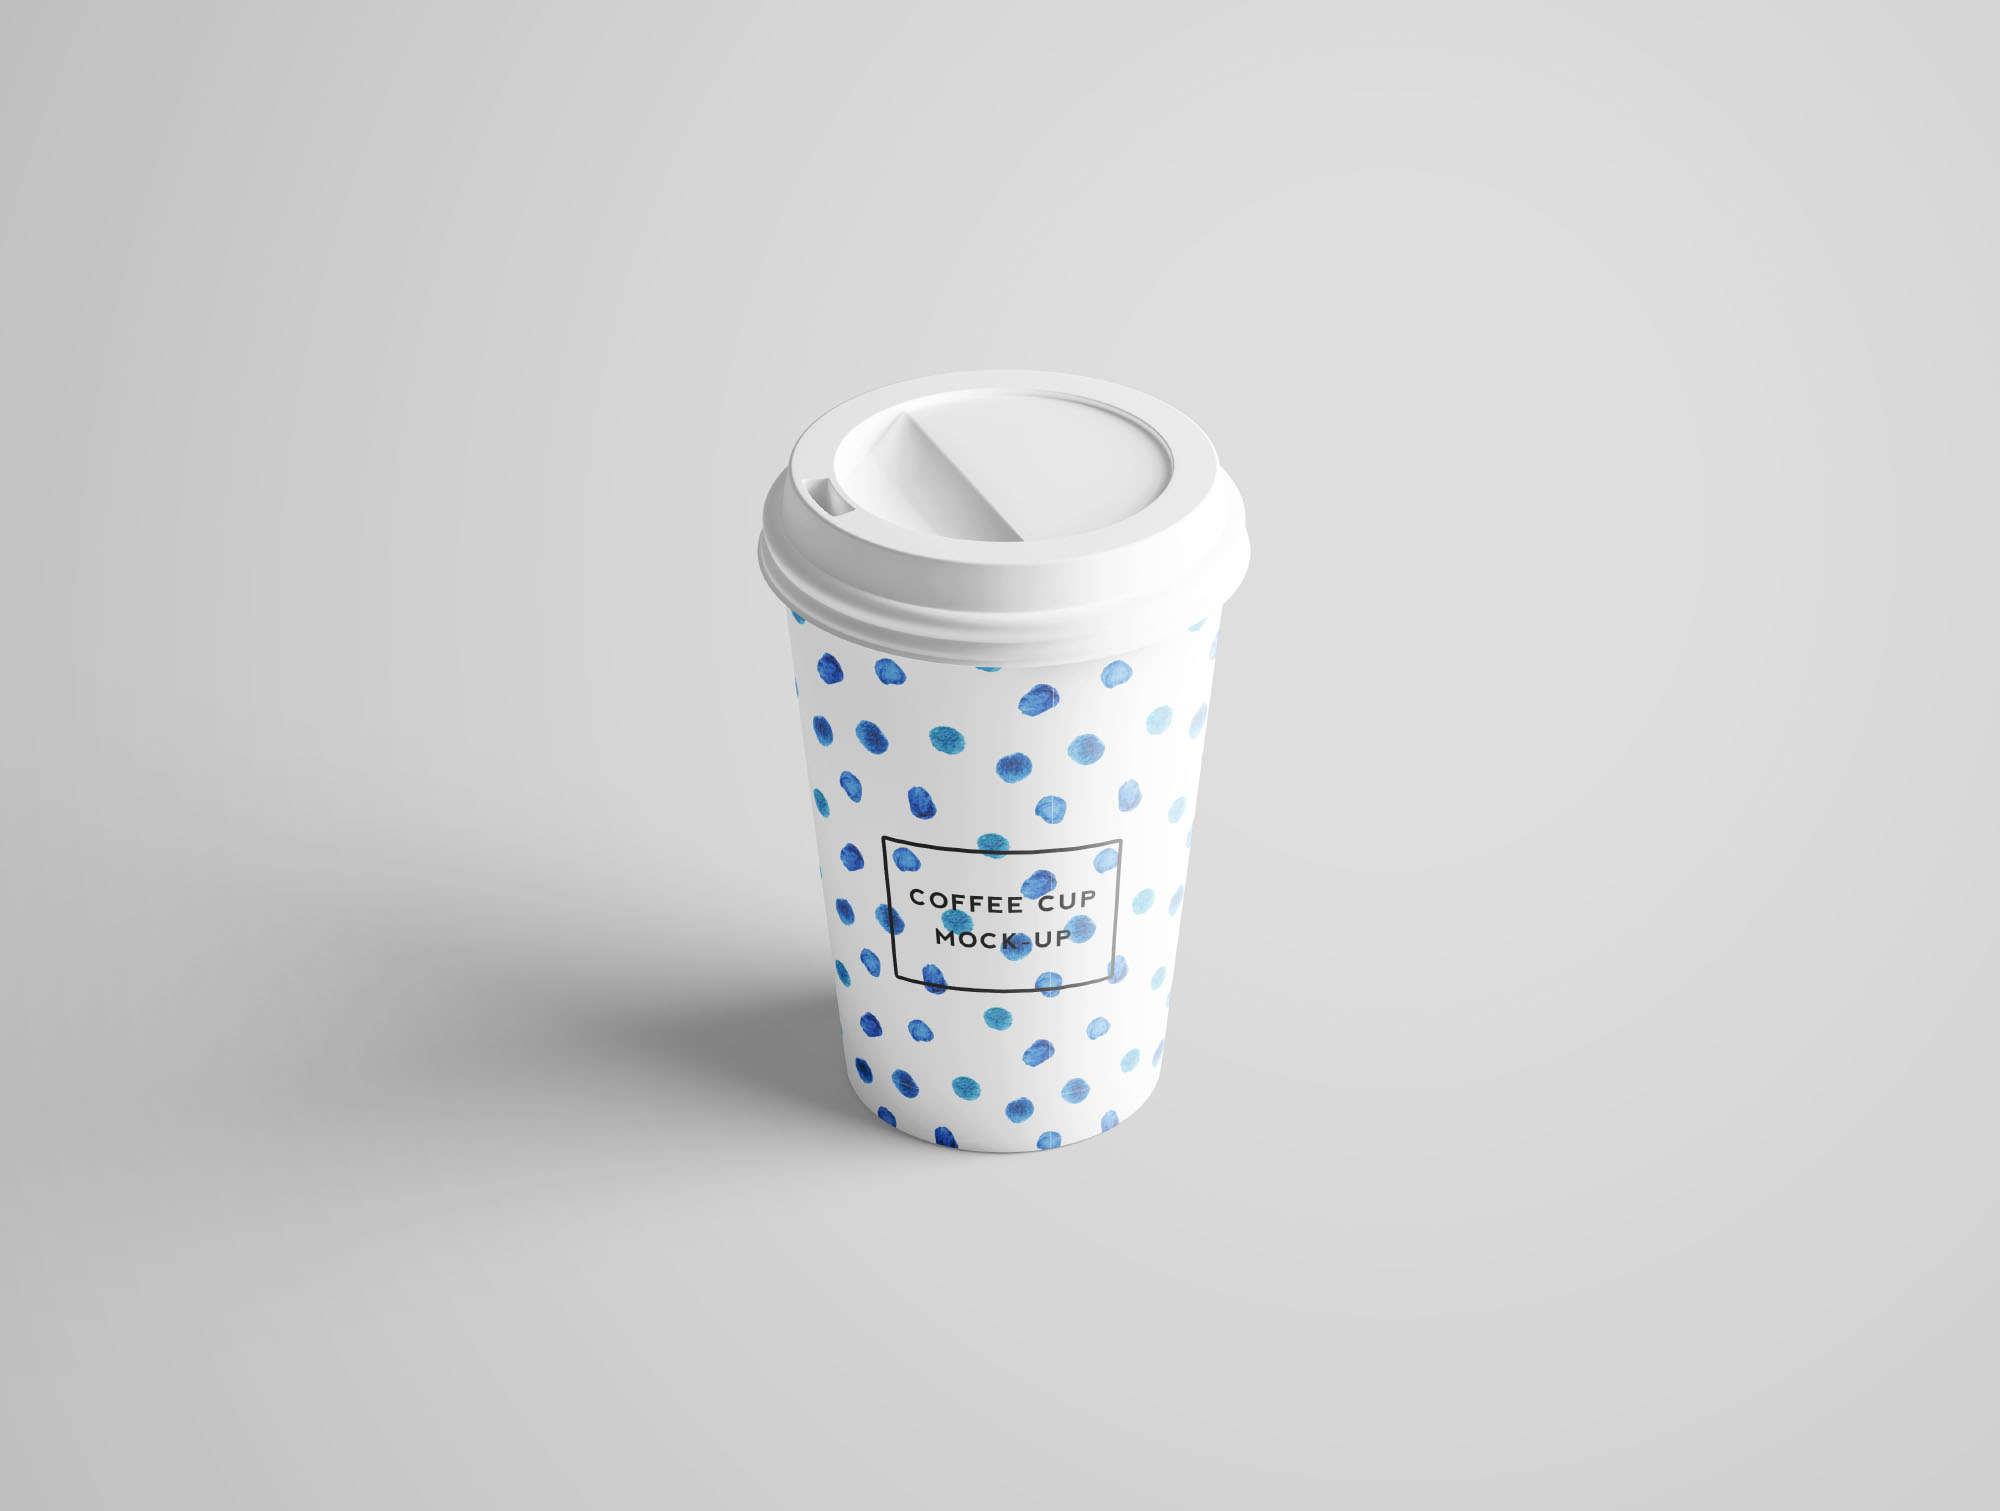 Coffee Cup Mockup - Perspective